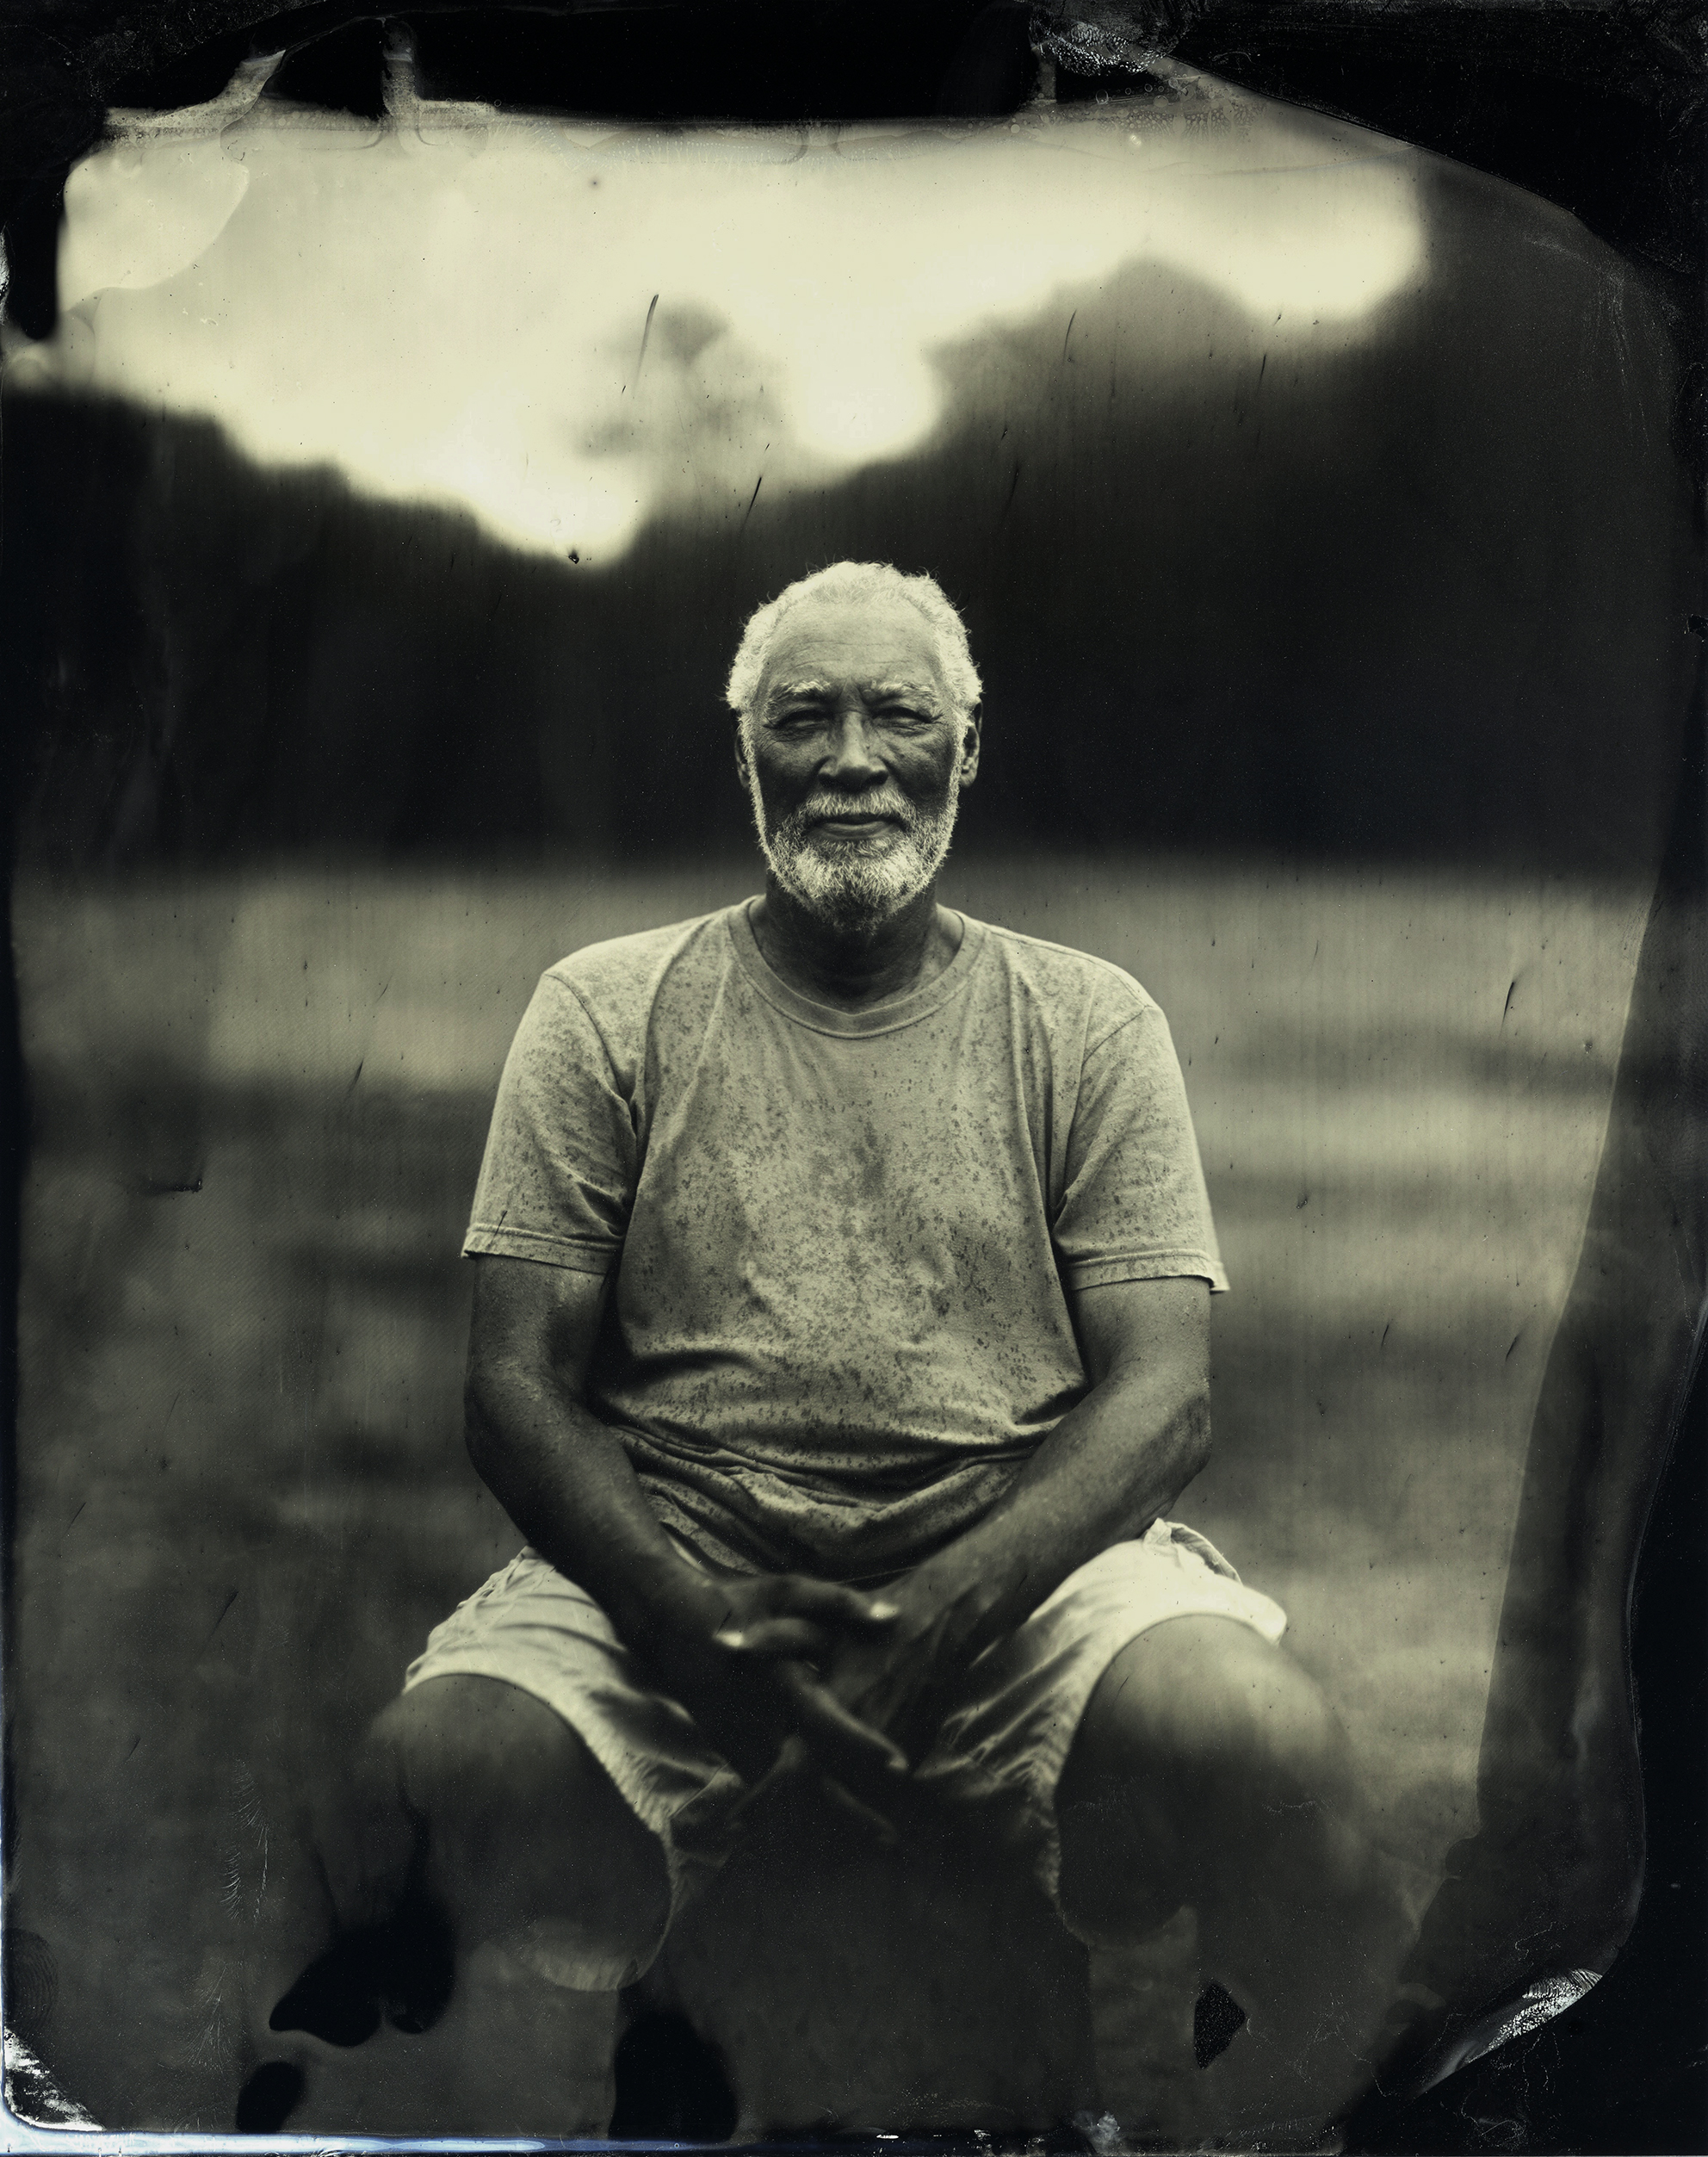 Jim Lee from the project Tintype: A Community Portrait